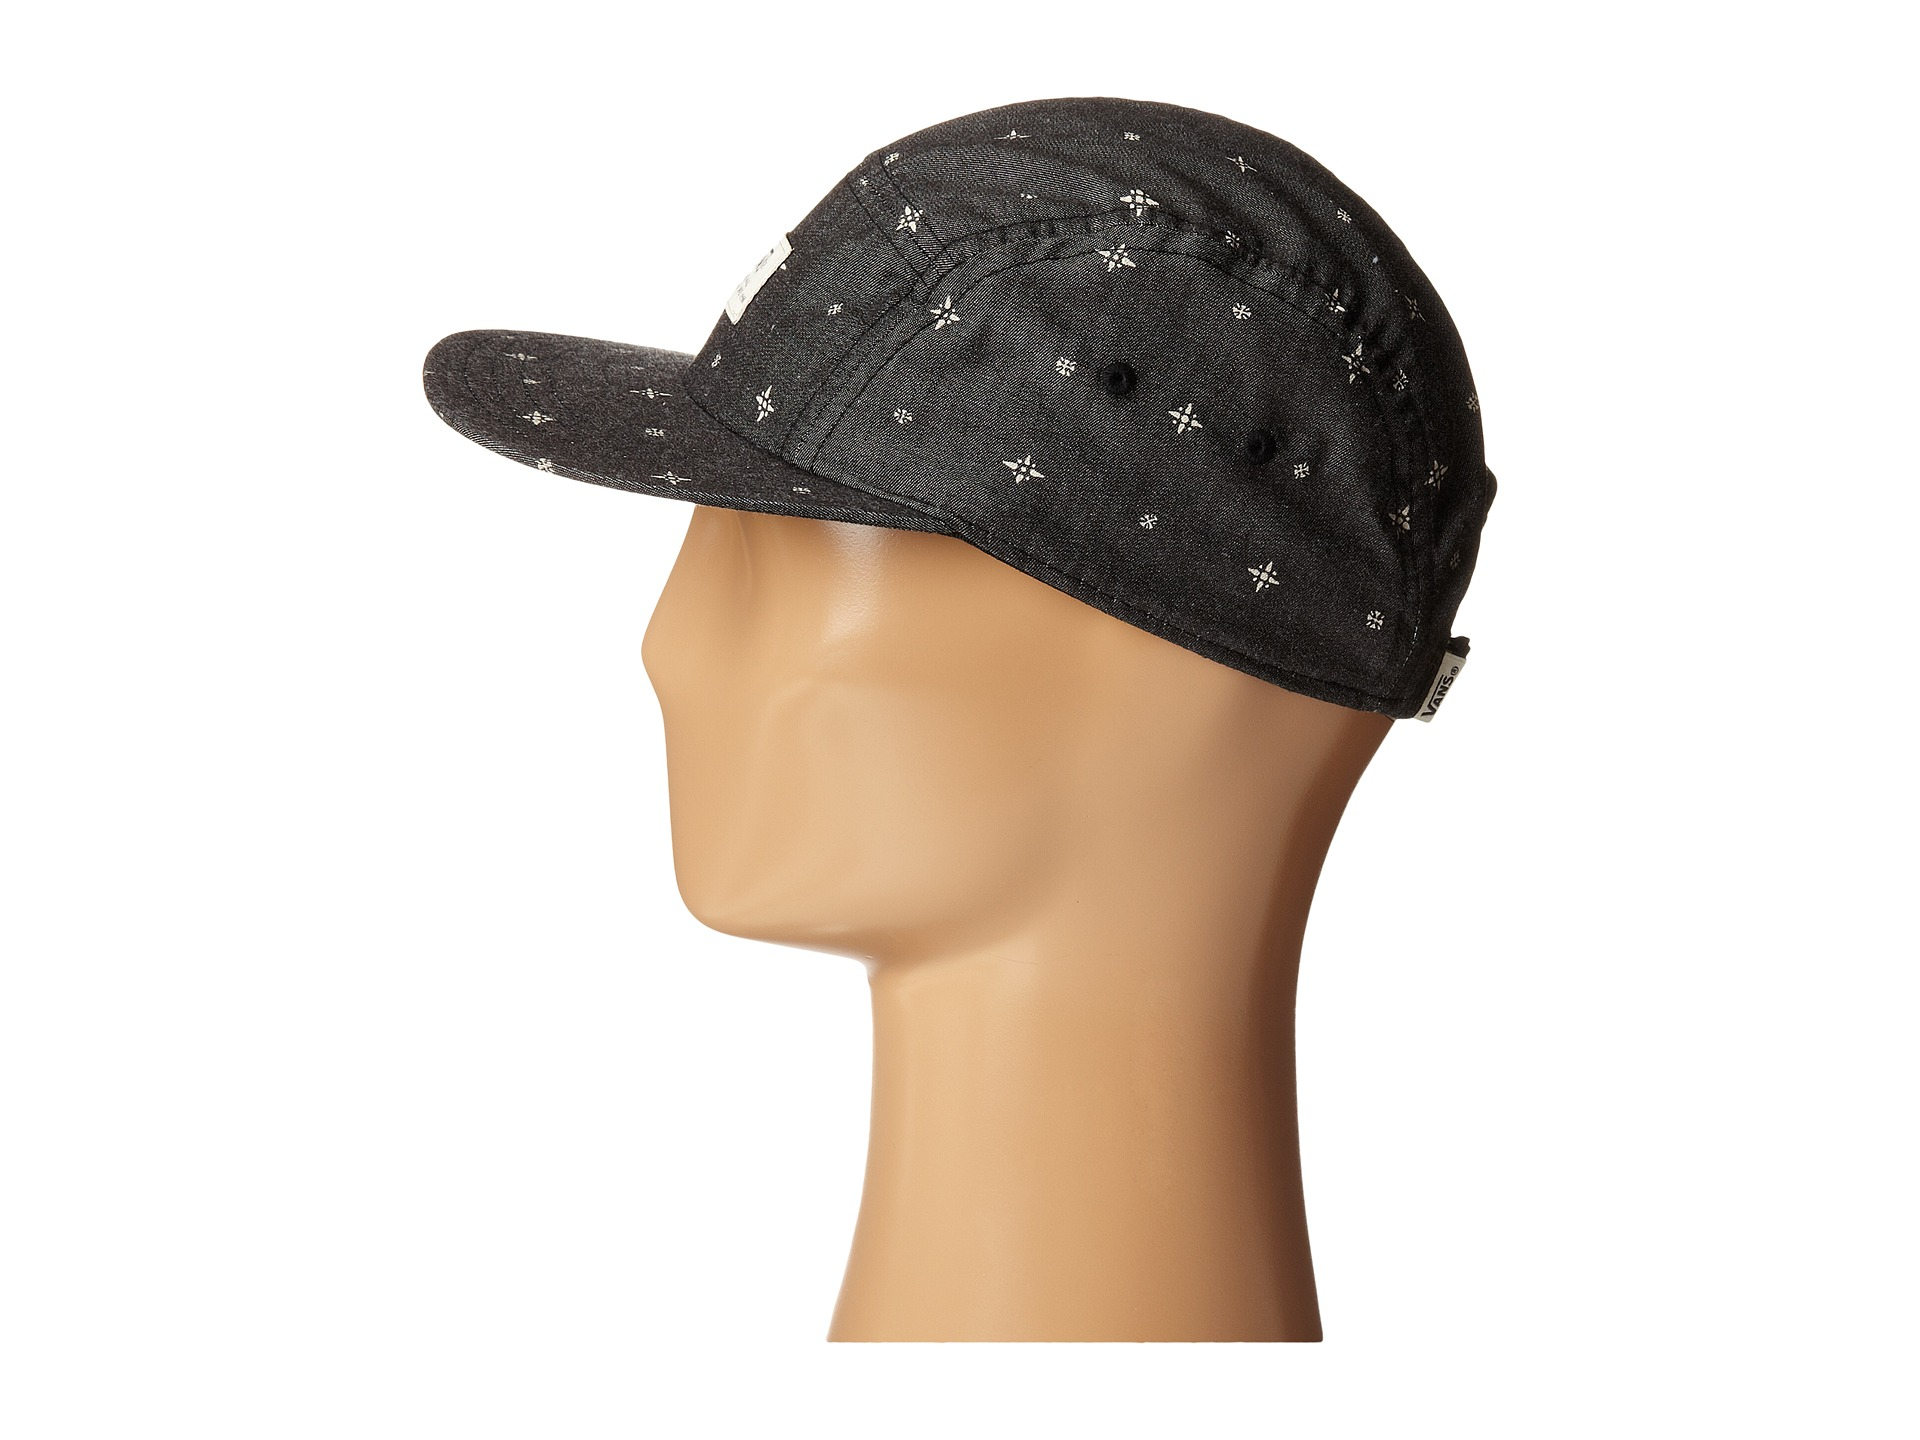 Lyst - Vans Davis 5-Panel Camper Hat in Black for Men 7b85c577213